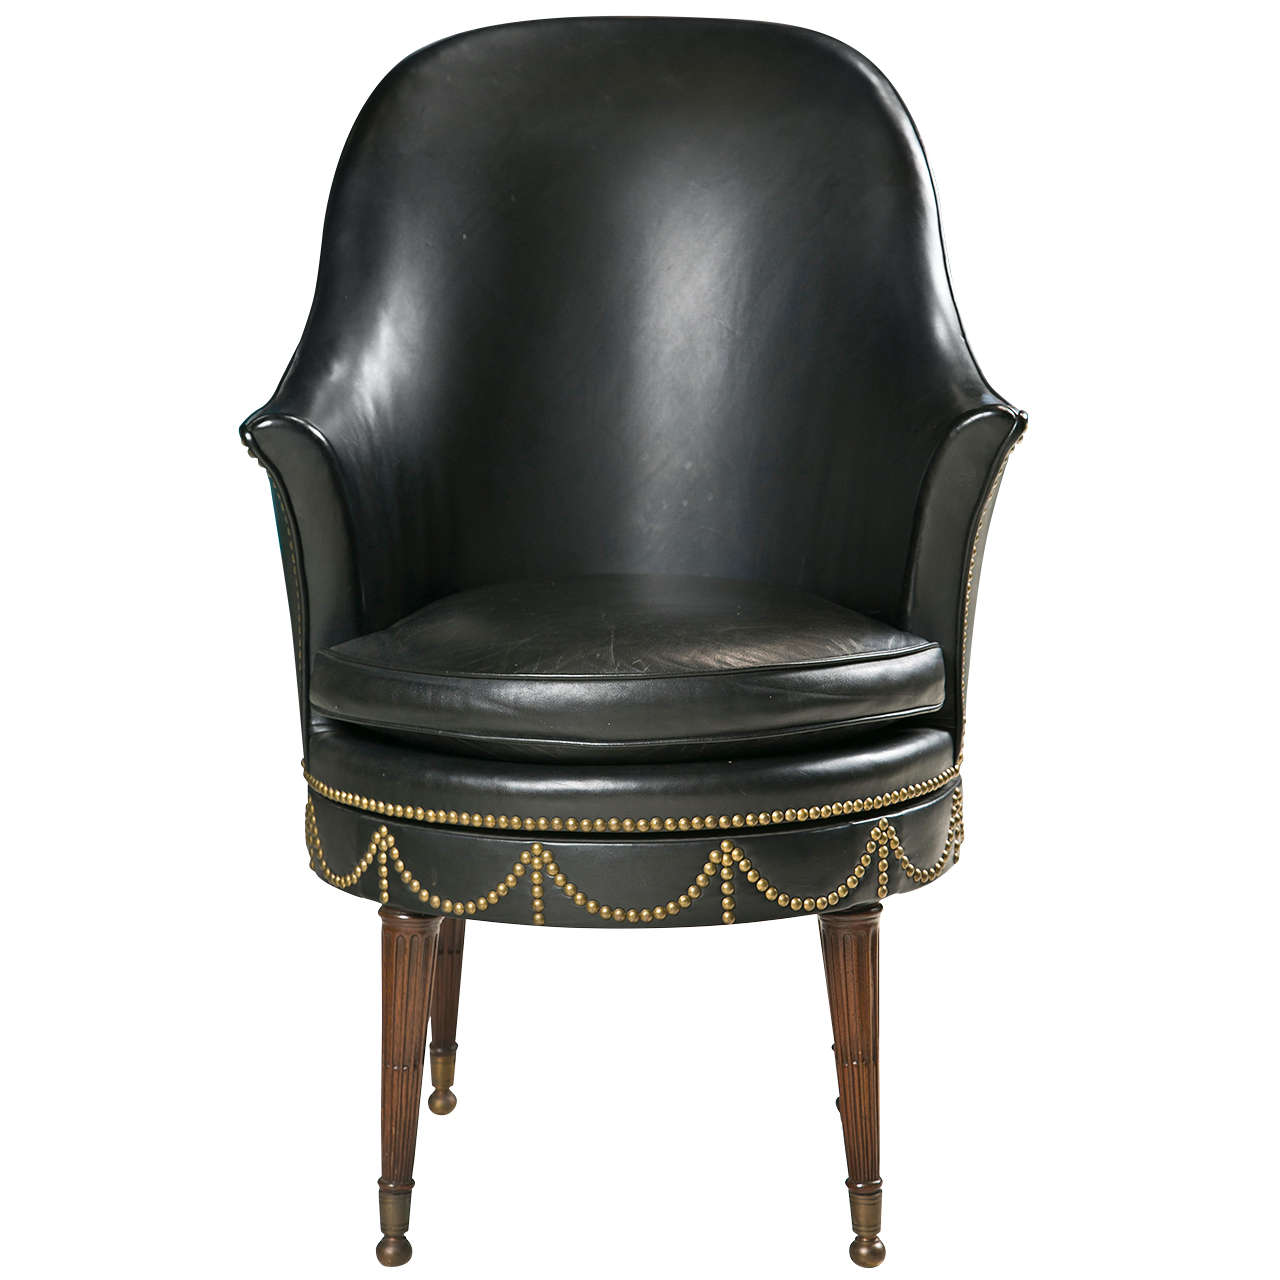 Black Swivel Chair Black Leather Swivel Chair With Decorative Nailheads At